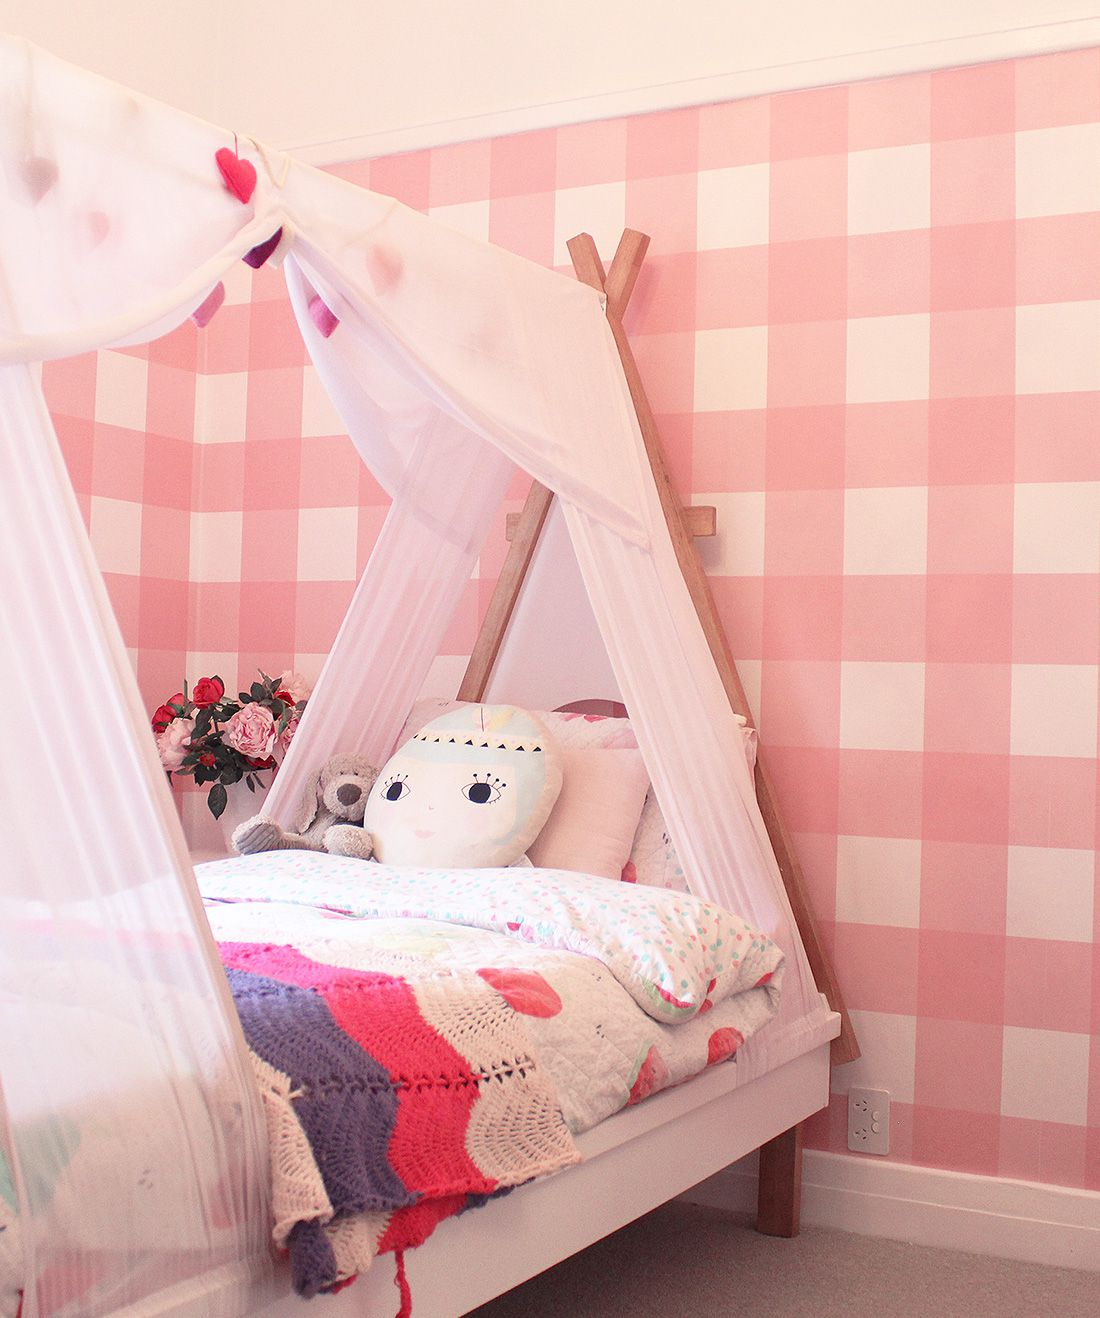 Buffalo Check Wallpaper • Kids Bedroom • Pink Plaid Wallpaper